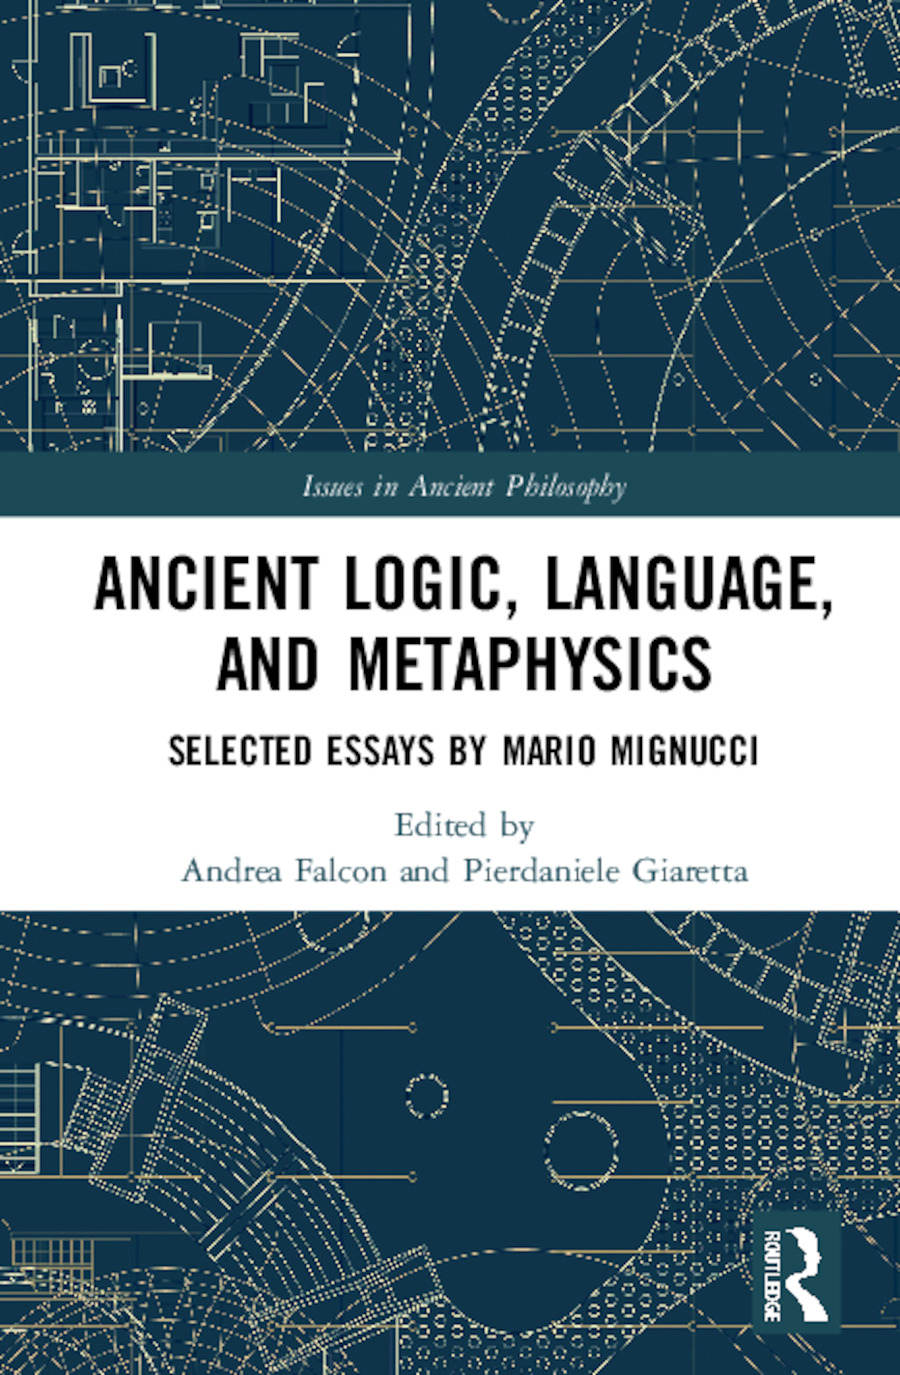 Ancient Logic, Language, and Metaphysics: Selected Essays by Mario Mignucci book cover